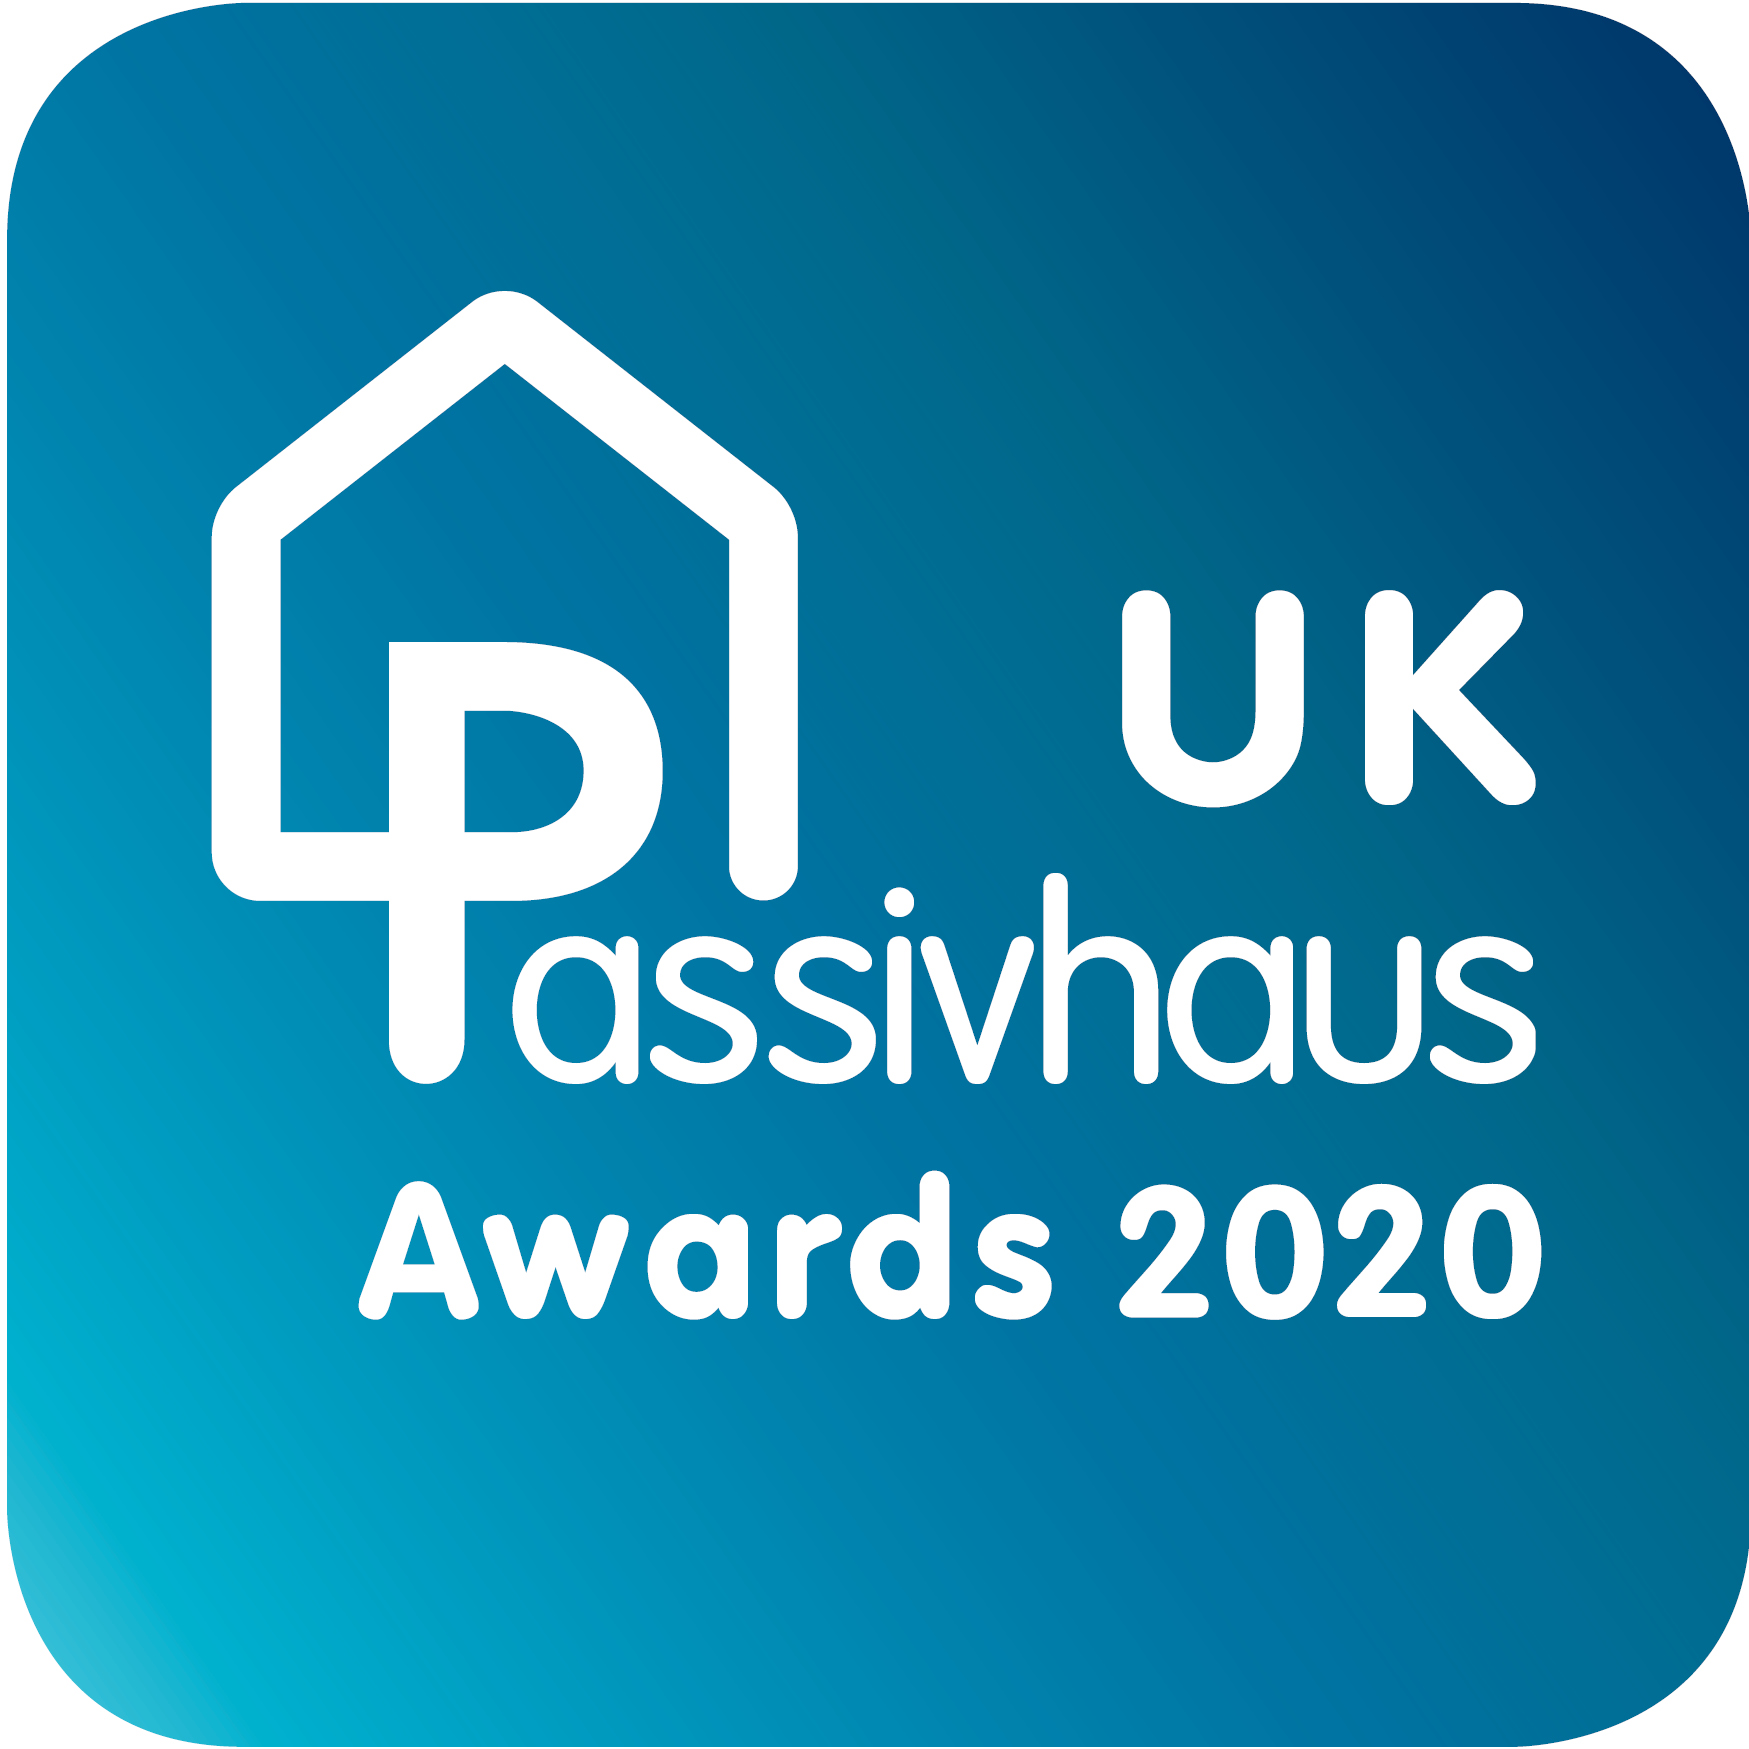 UK Passivhaus Awards 2020 logo